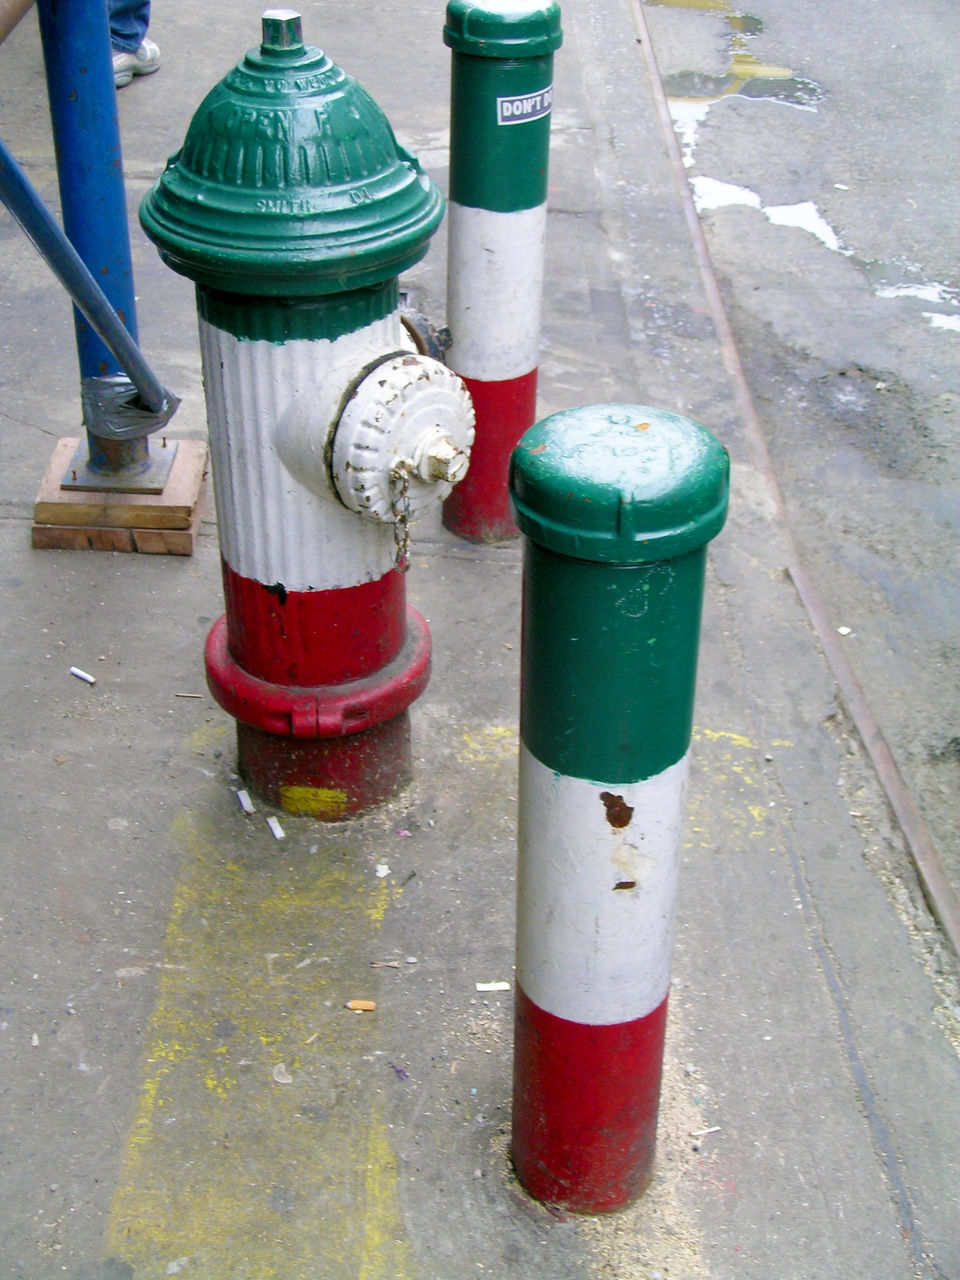 outdoors, fire hydrant, day, street, road, aerosol can, no people, red, traffic cone, multi colored, drum - container